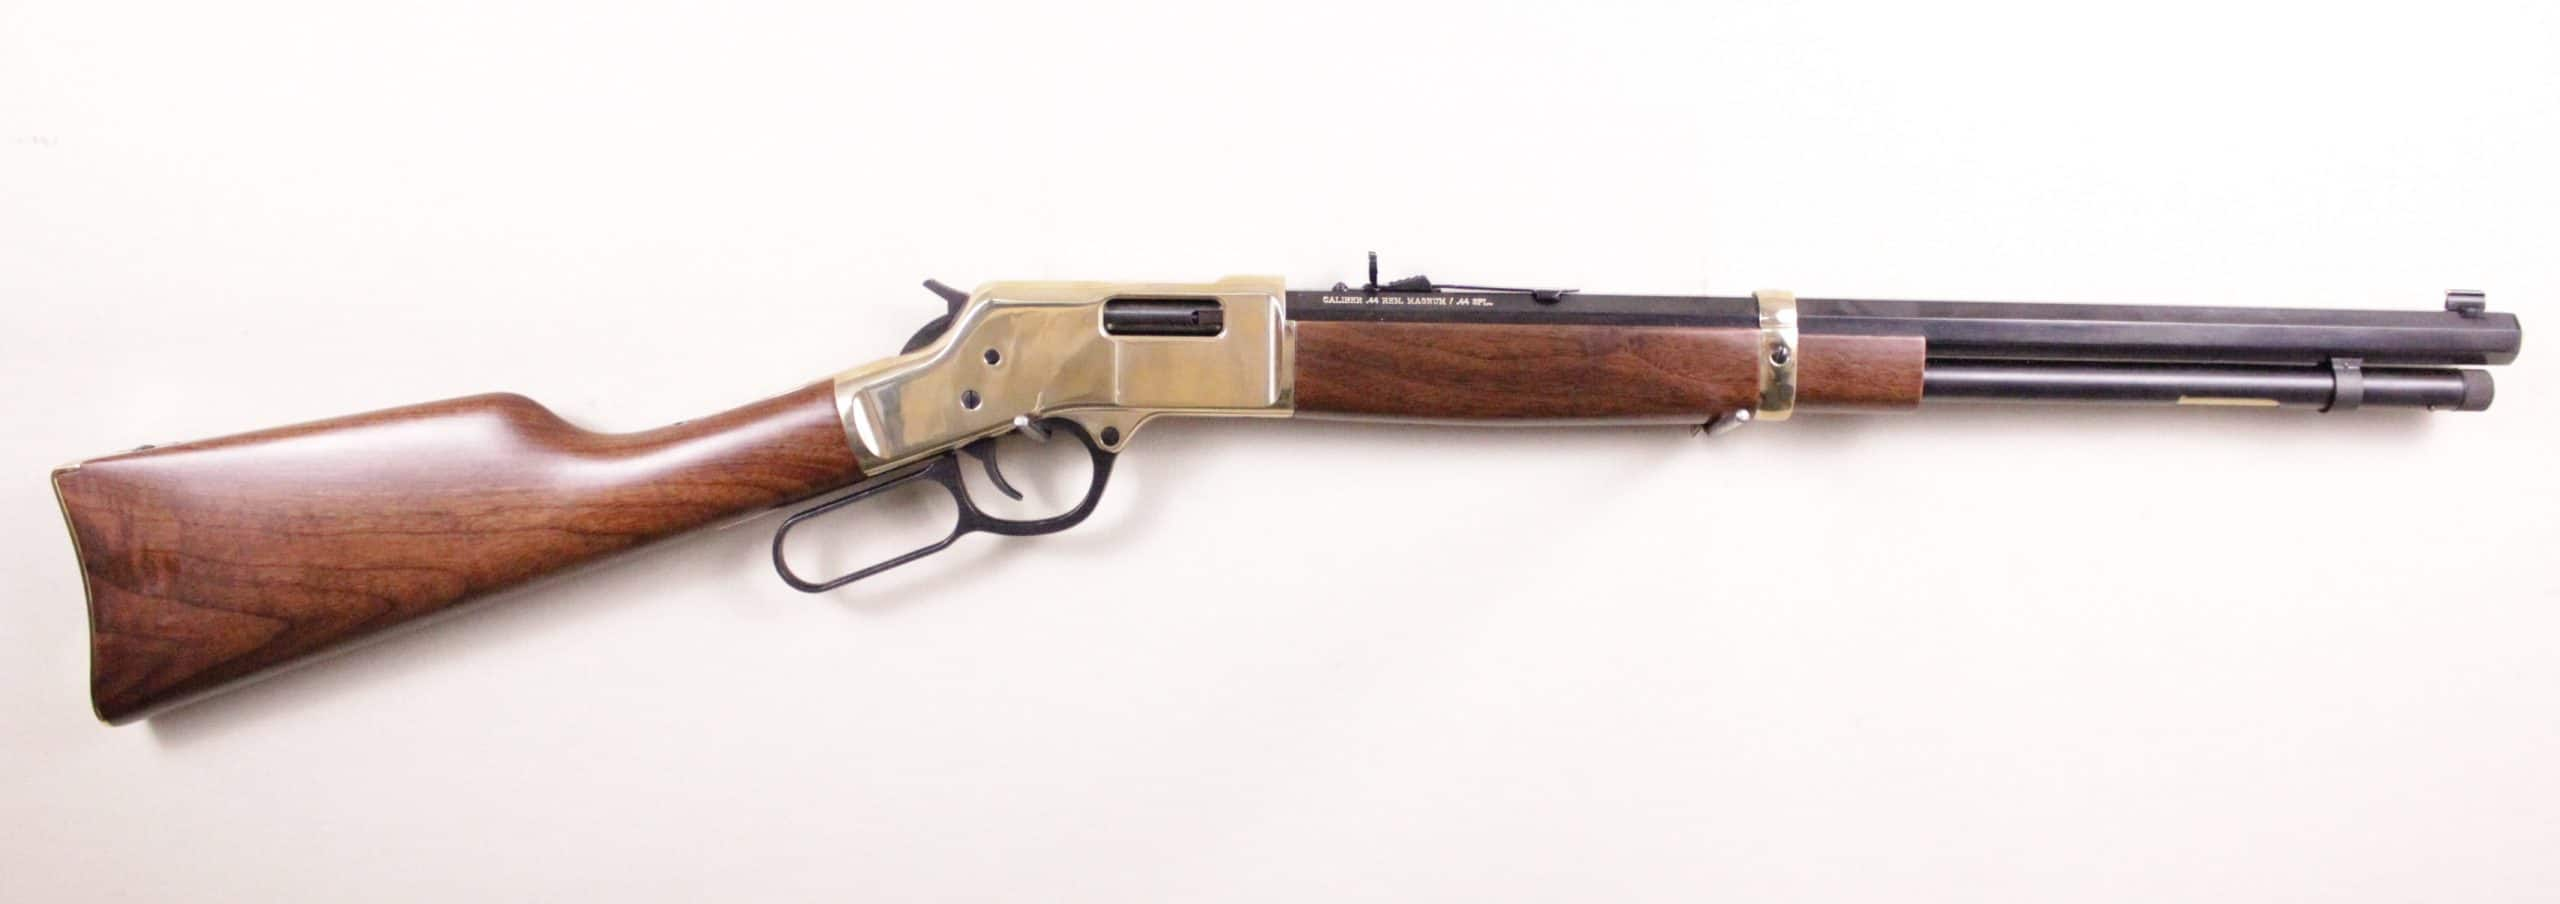 image of Henry Big Boy 44 Magnum Rifle